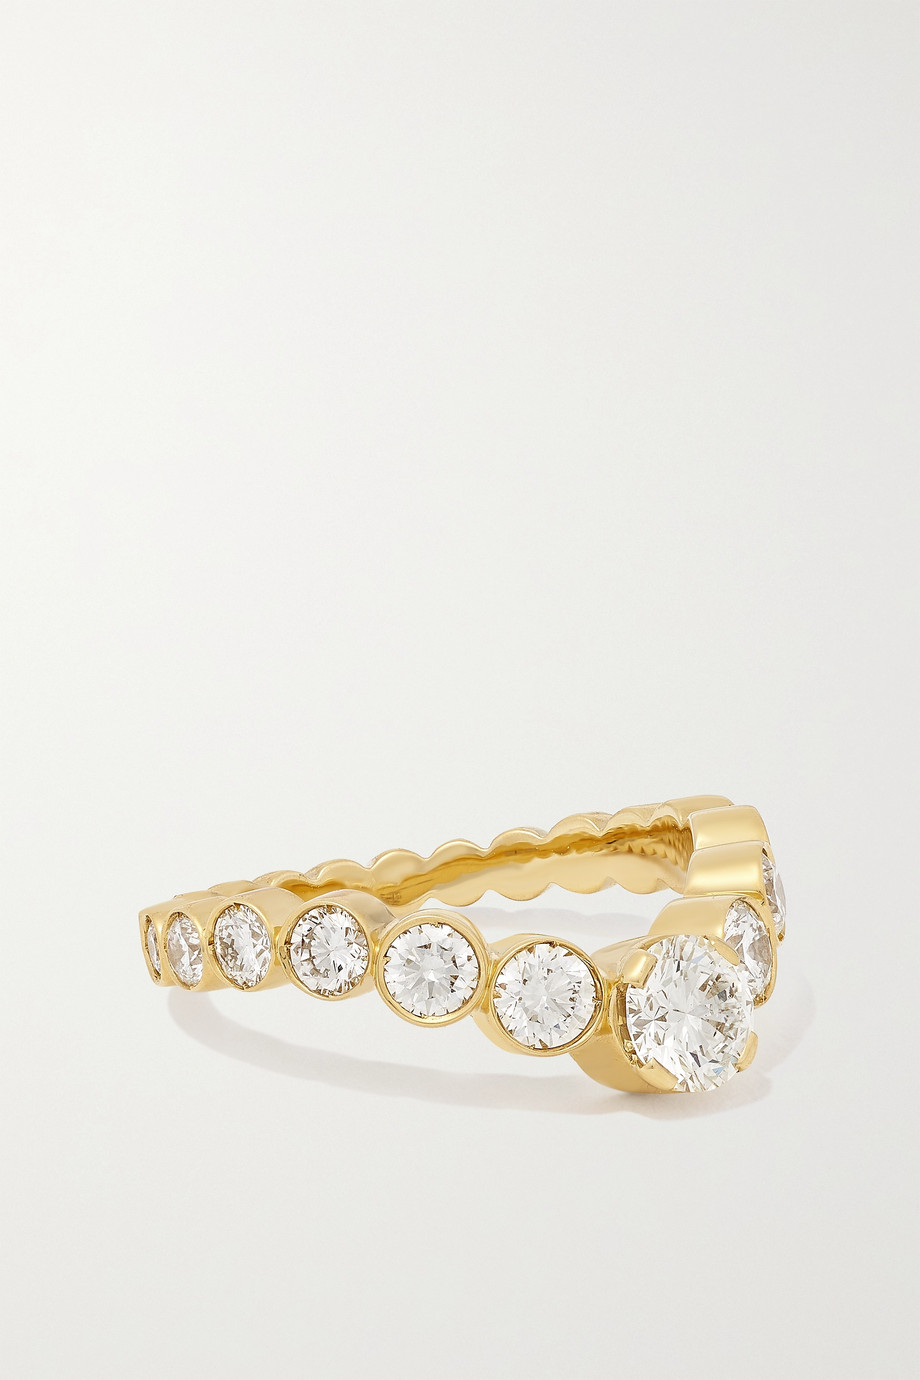 Sophie Bille Brahe Grace Ensemble Royale Ring aus 18 Karat Gold mit Diamanten